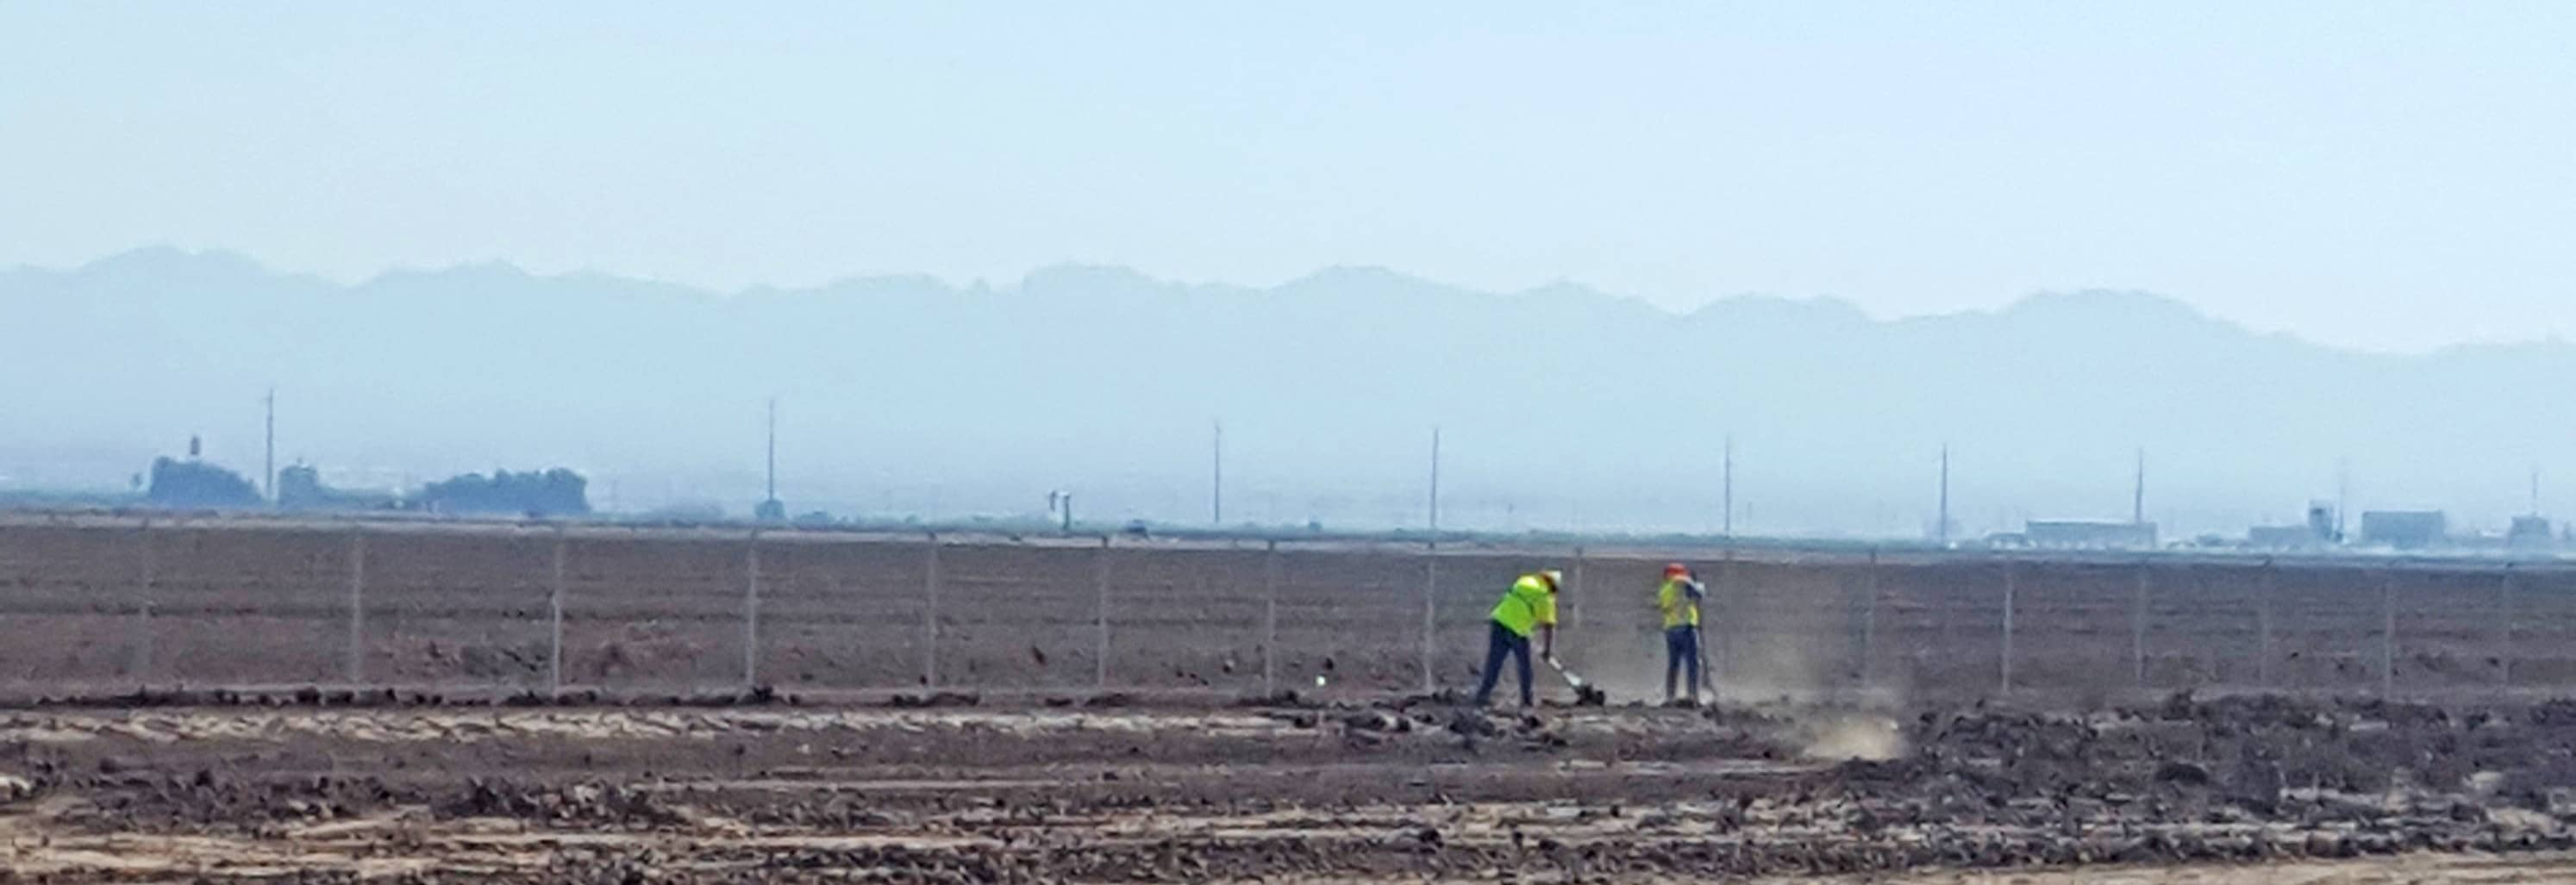 Solar_Frontier_Americas_Midway_I_Project_Workers_Prepare_The_Site_For_Installation_Of_The_Perimeter_Safety_Fence Solar Frontier Kicks Off Construction Of 107 MW SoCal Projects